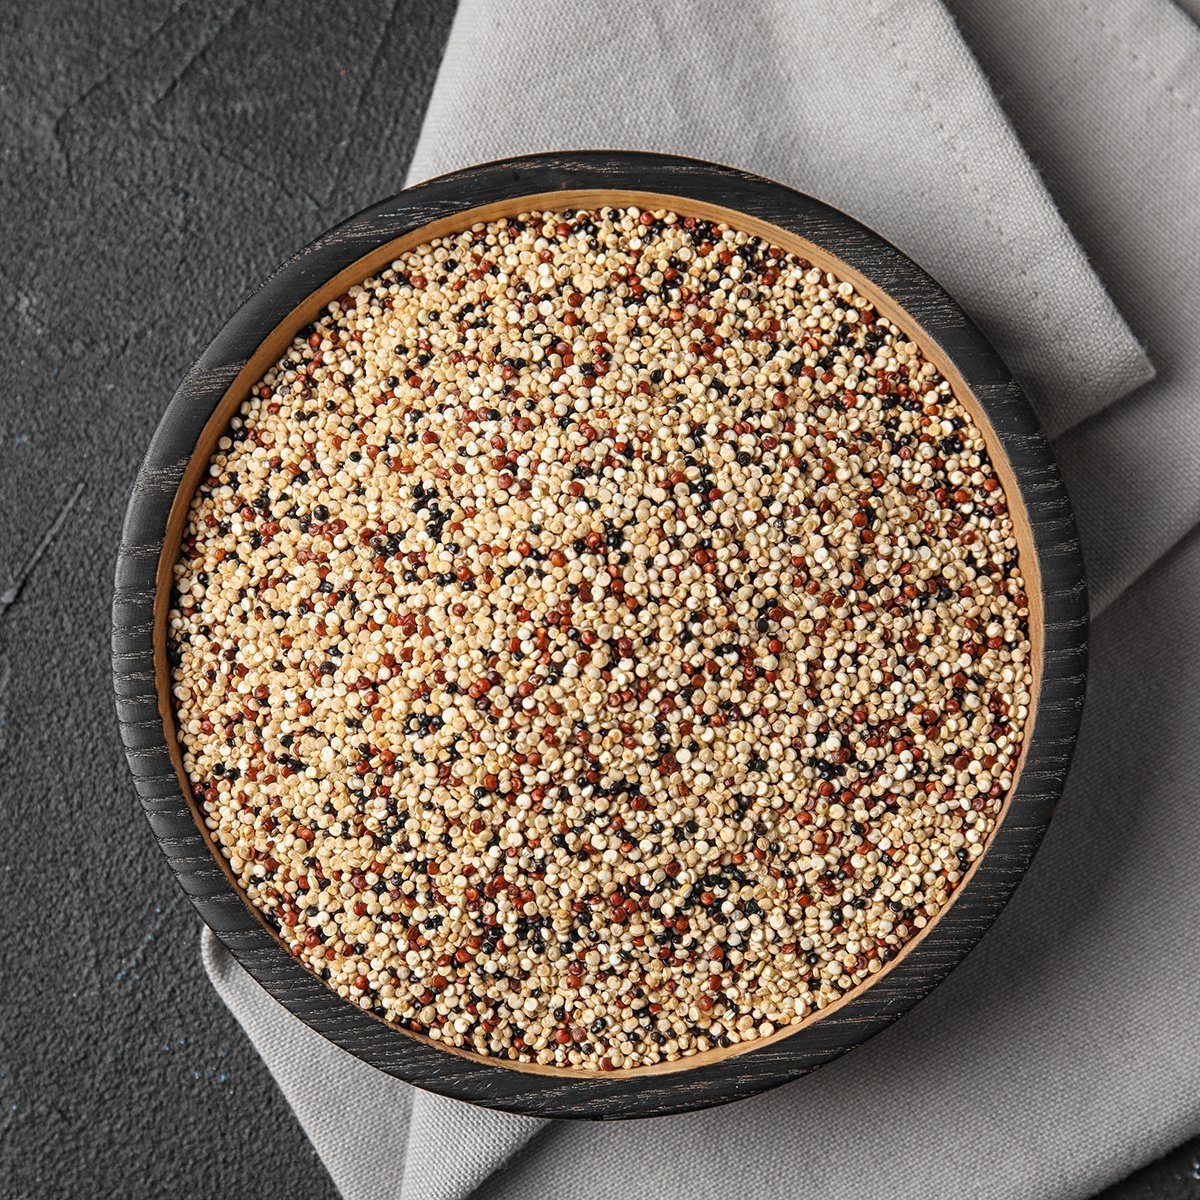 Plate with mixed quinoa seeds on dark background